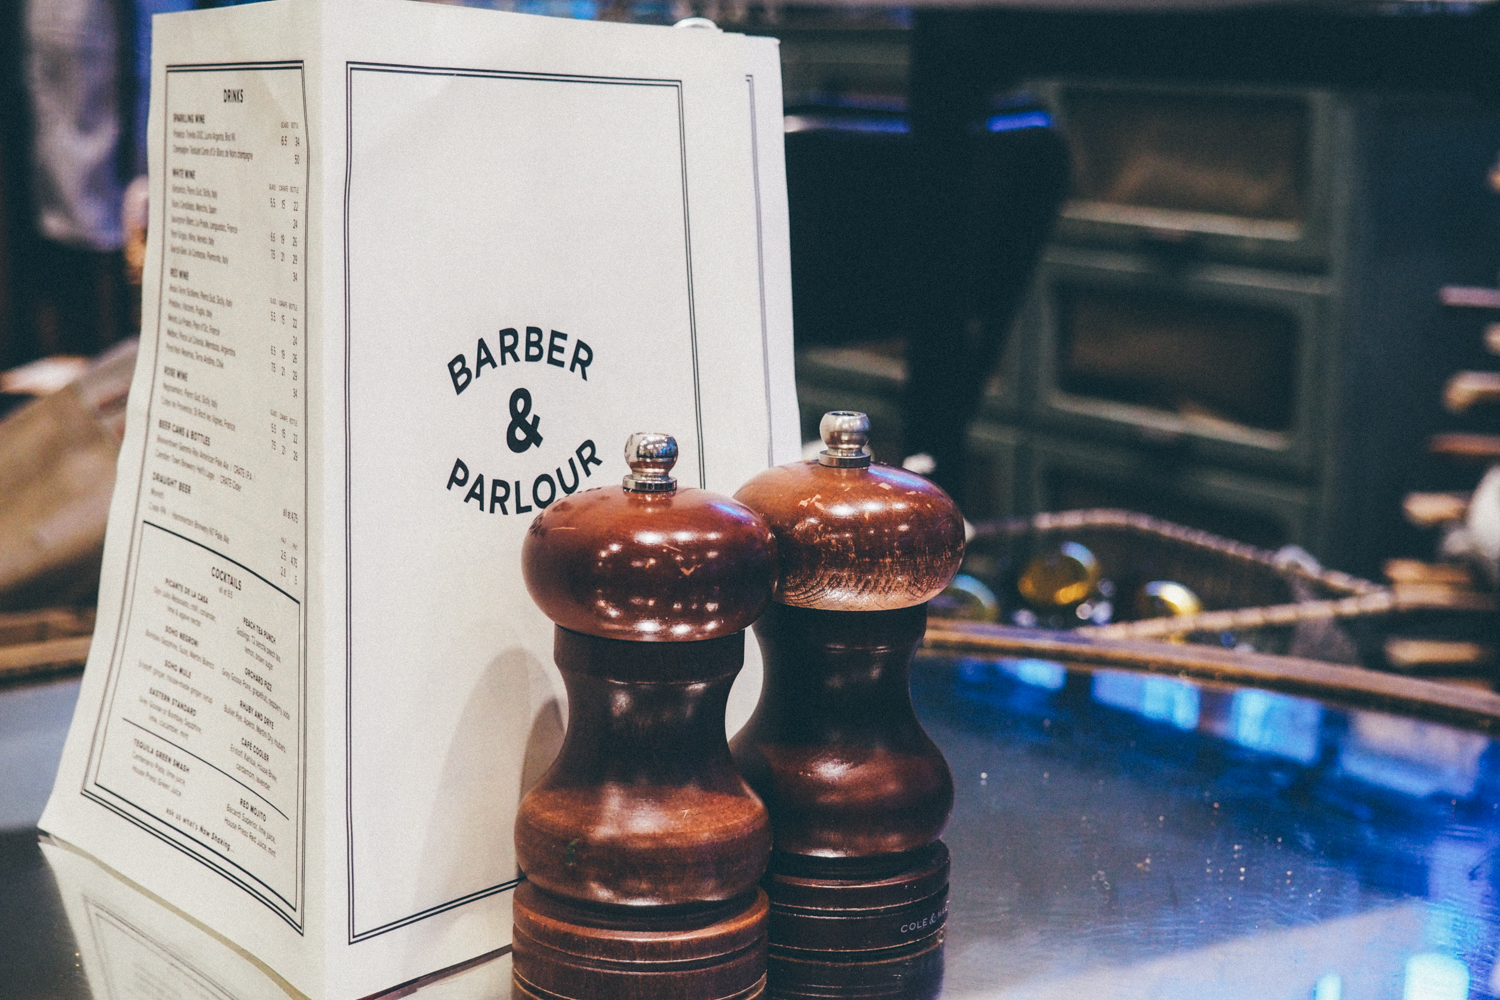 Barber and Parlour - Shoreditch, London / Tippy.fr